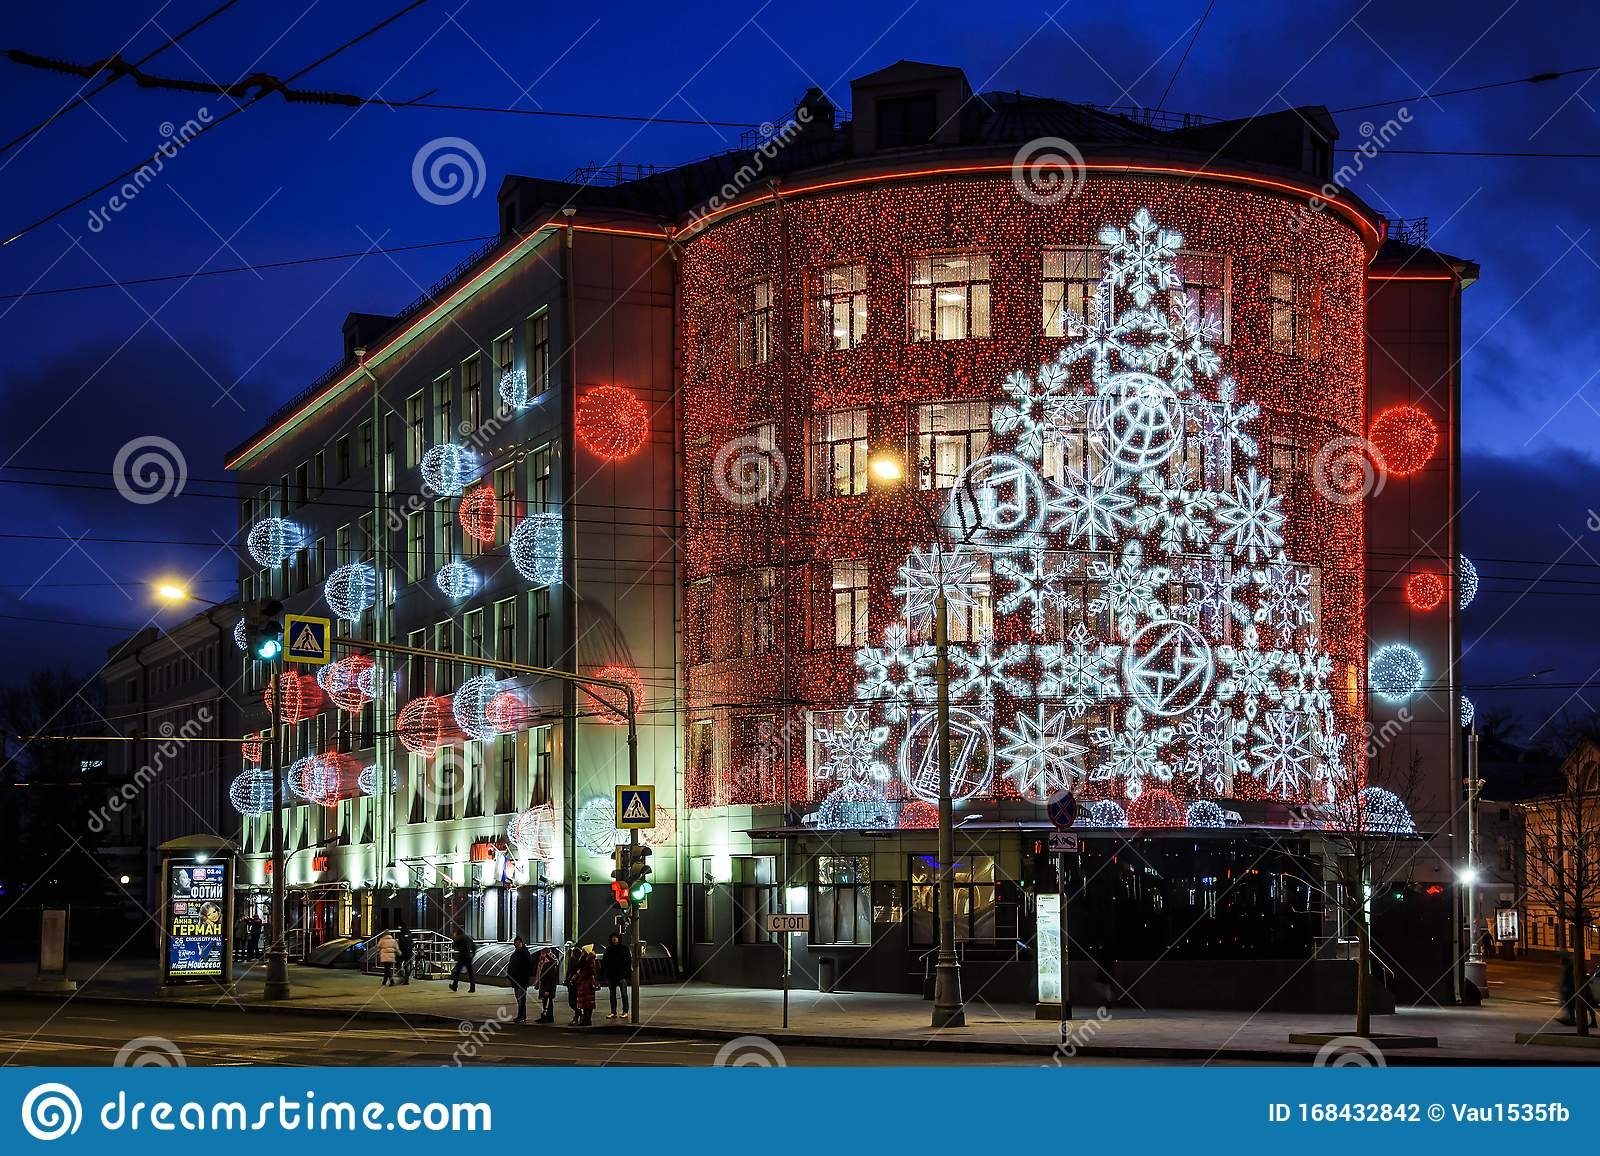 Building Christmas Decorations 2020 Christmas And New Year Light Installation And Decorations On The